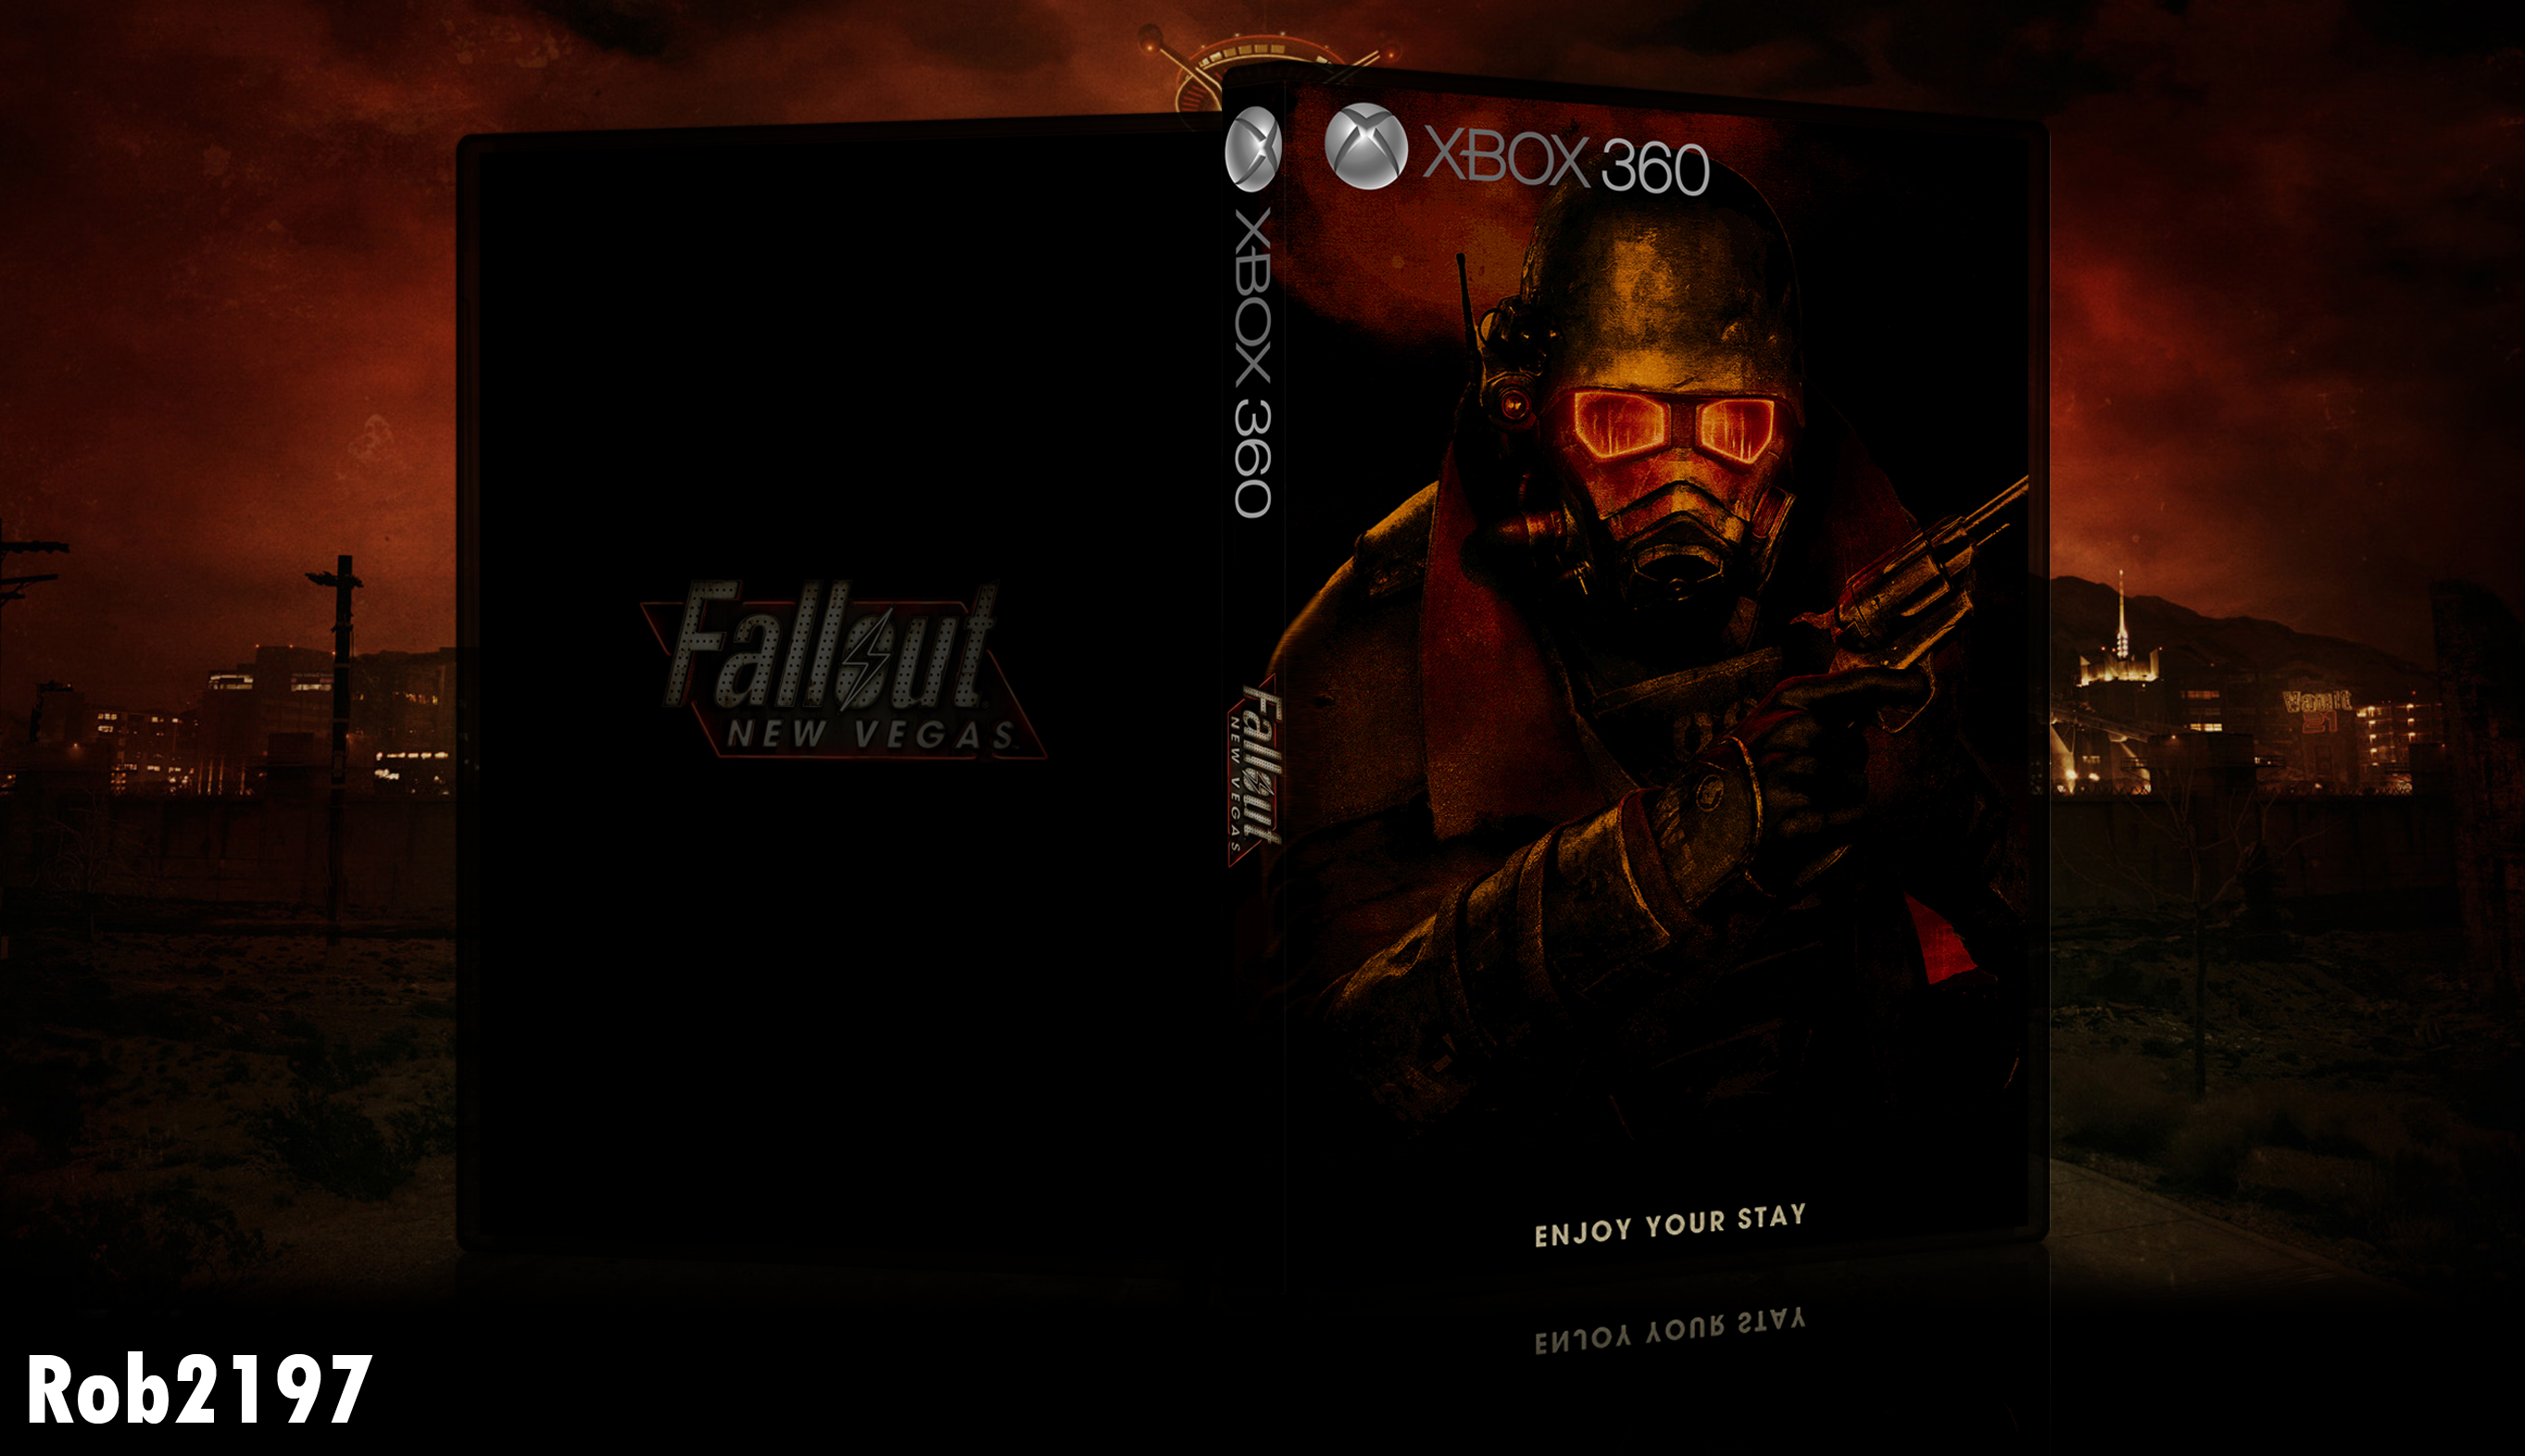 Fallout: New Vegas box cover